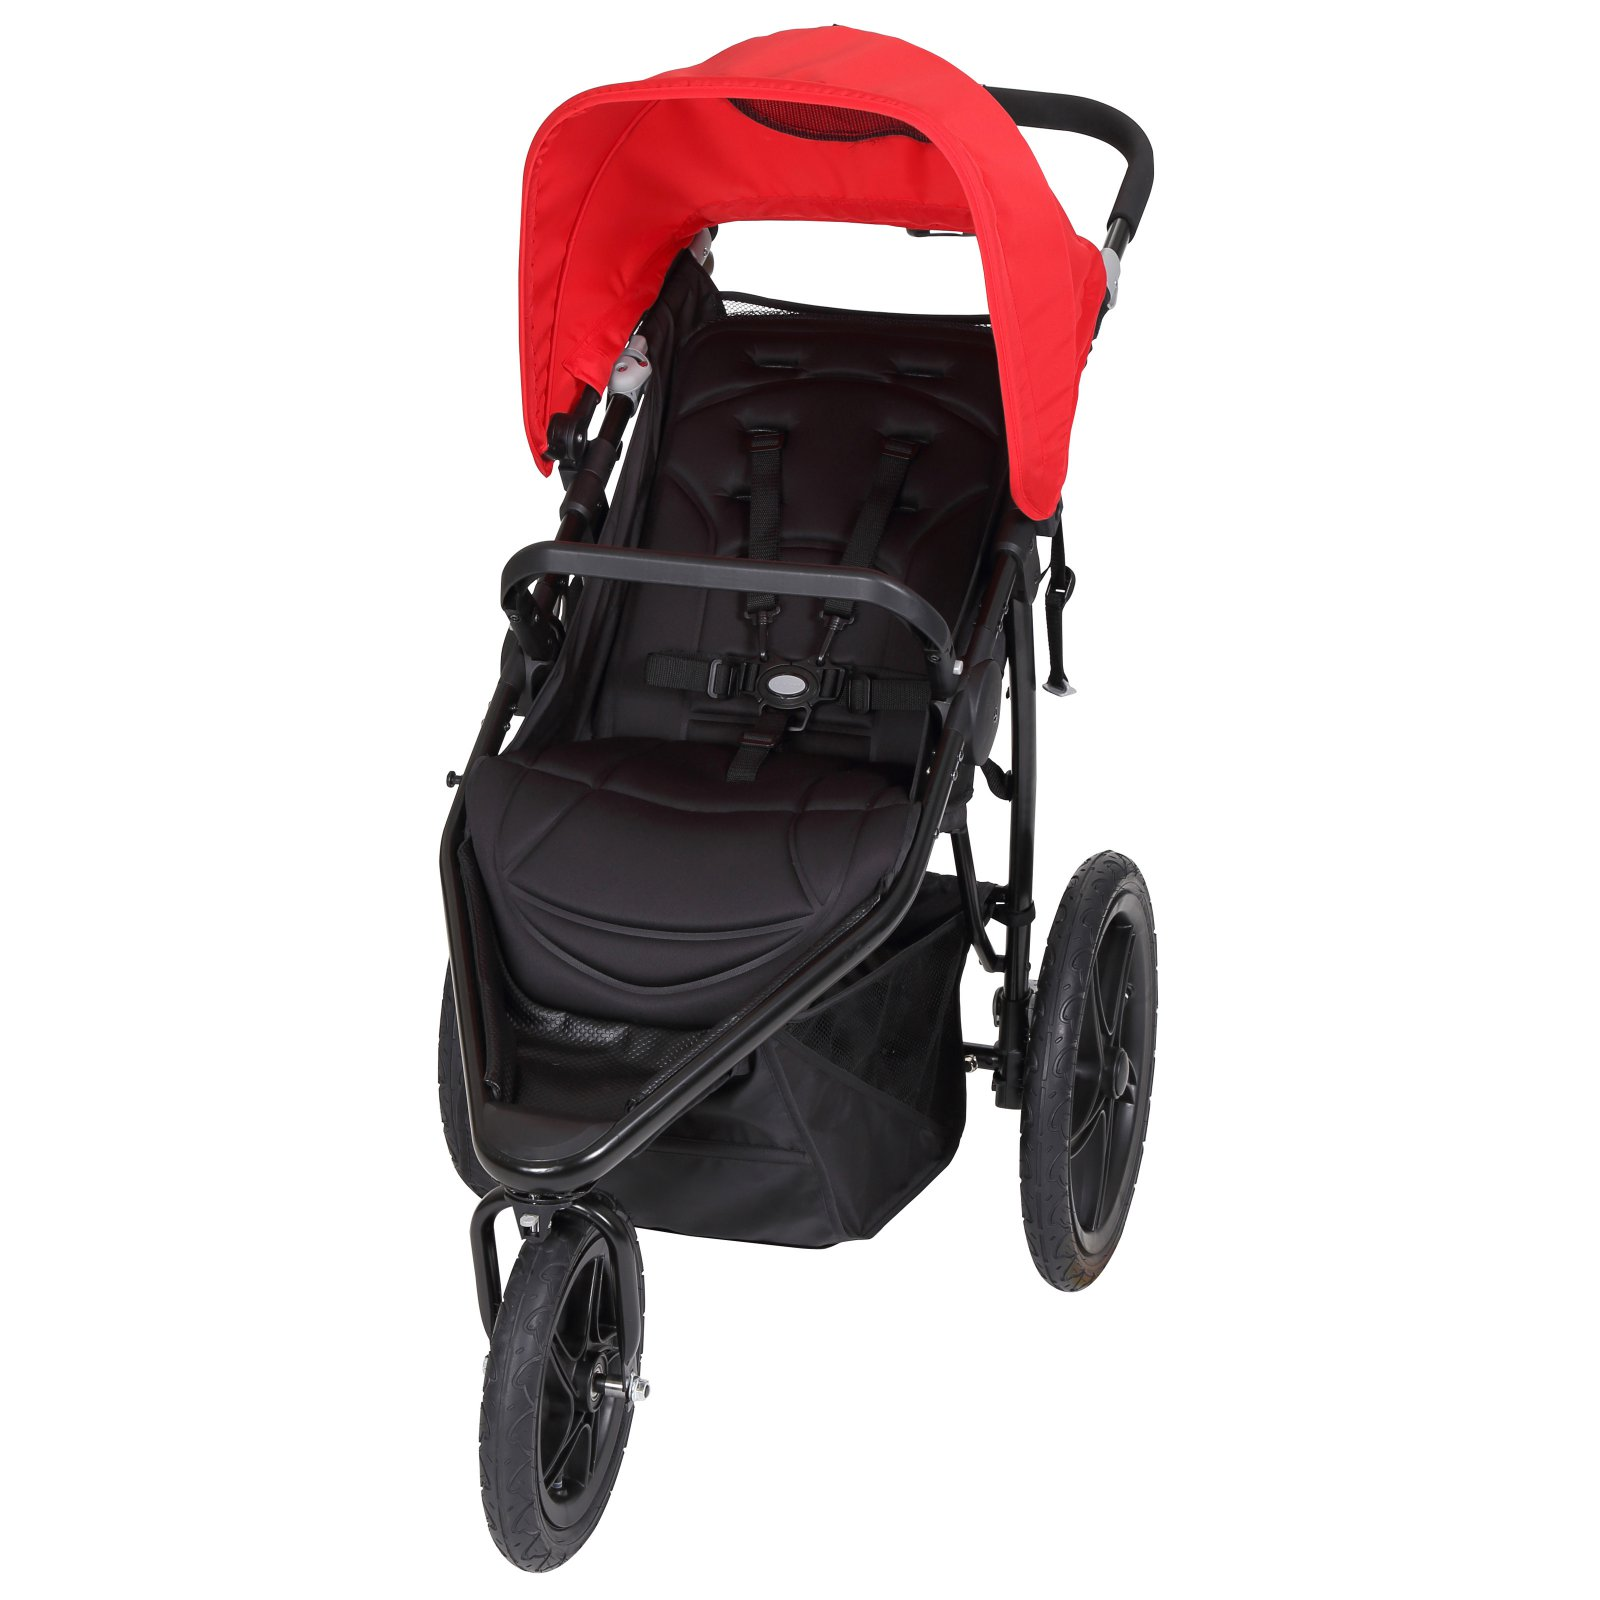 Baby Trend Stealth Jogging Stroller, Cardinal